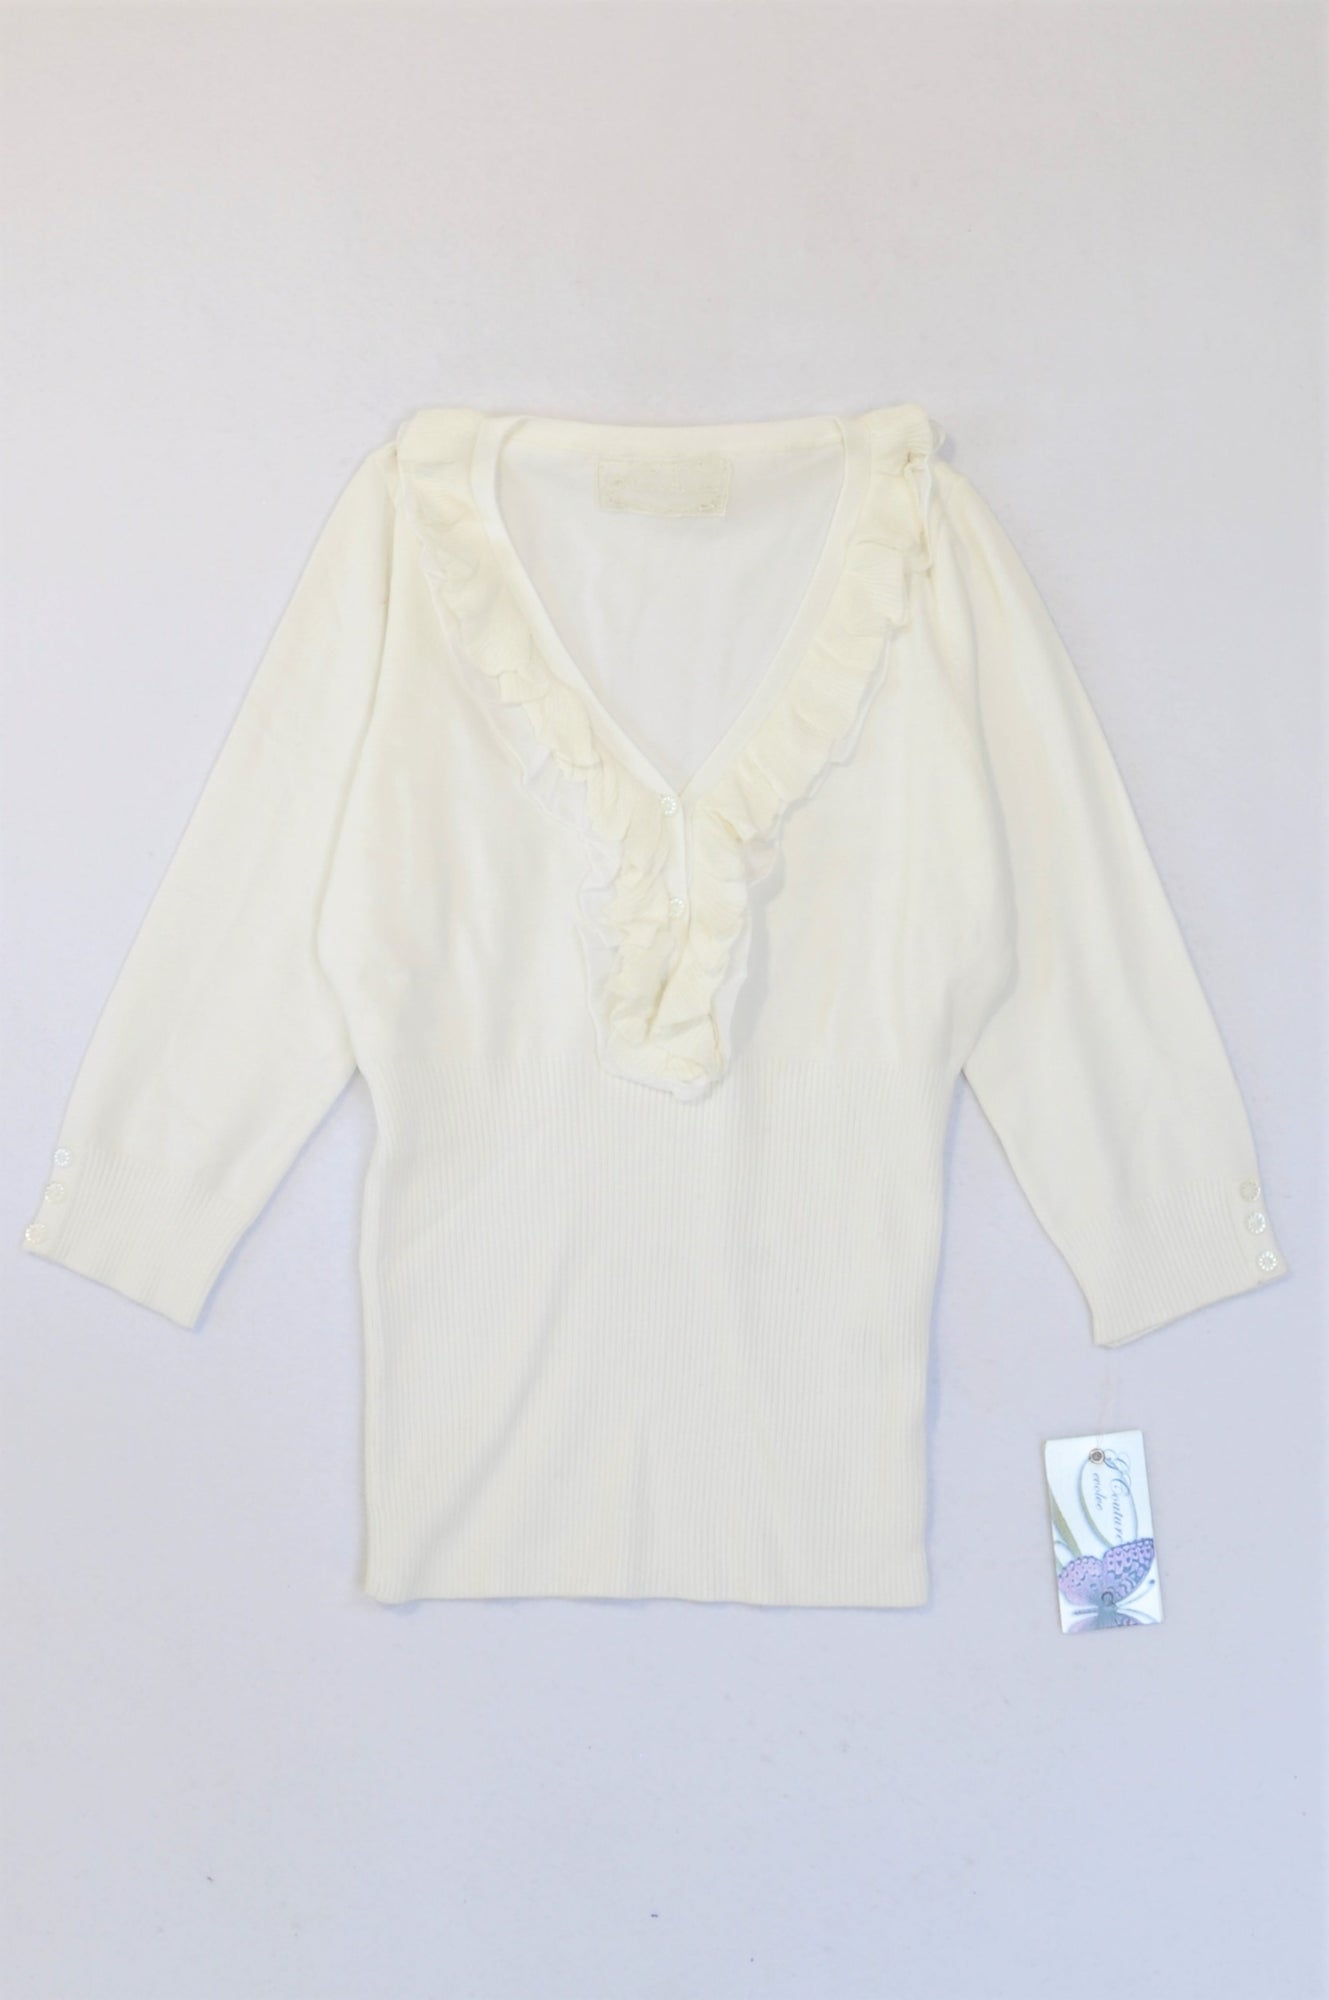 New G.Couture White Frill V-Neck Top Women Size M